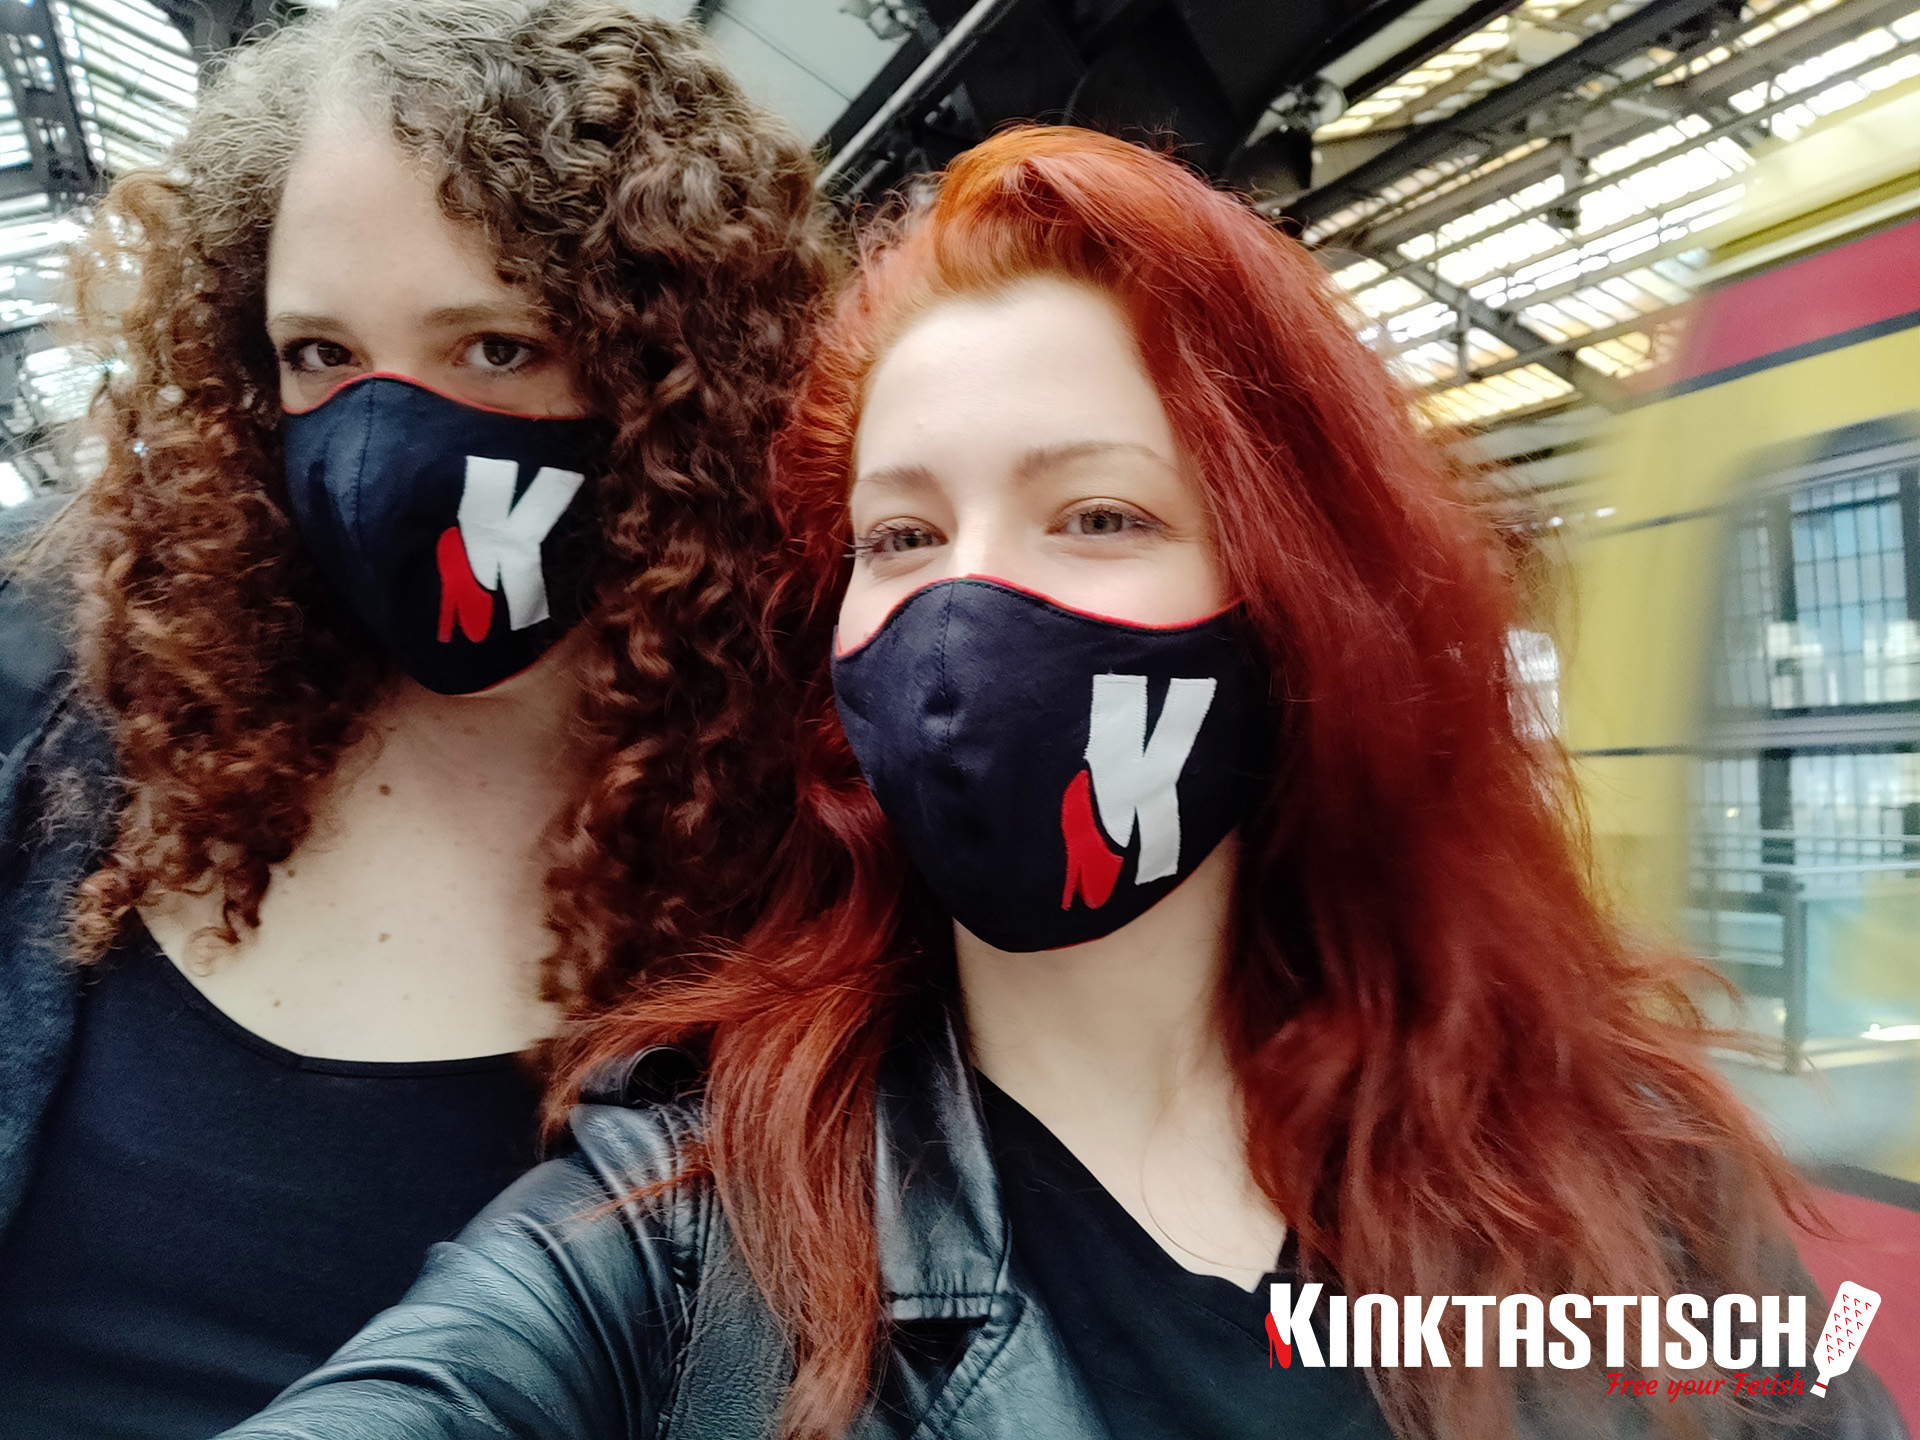 The Kinktastisch Mask (Shipping Included)